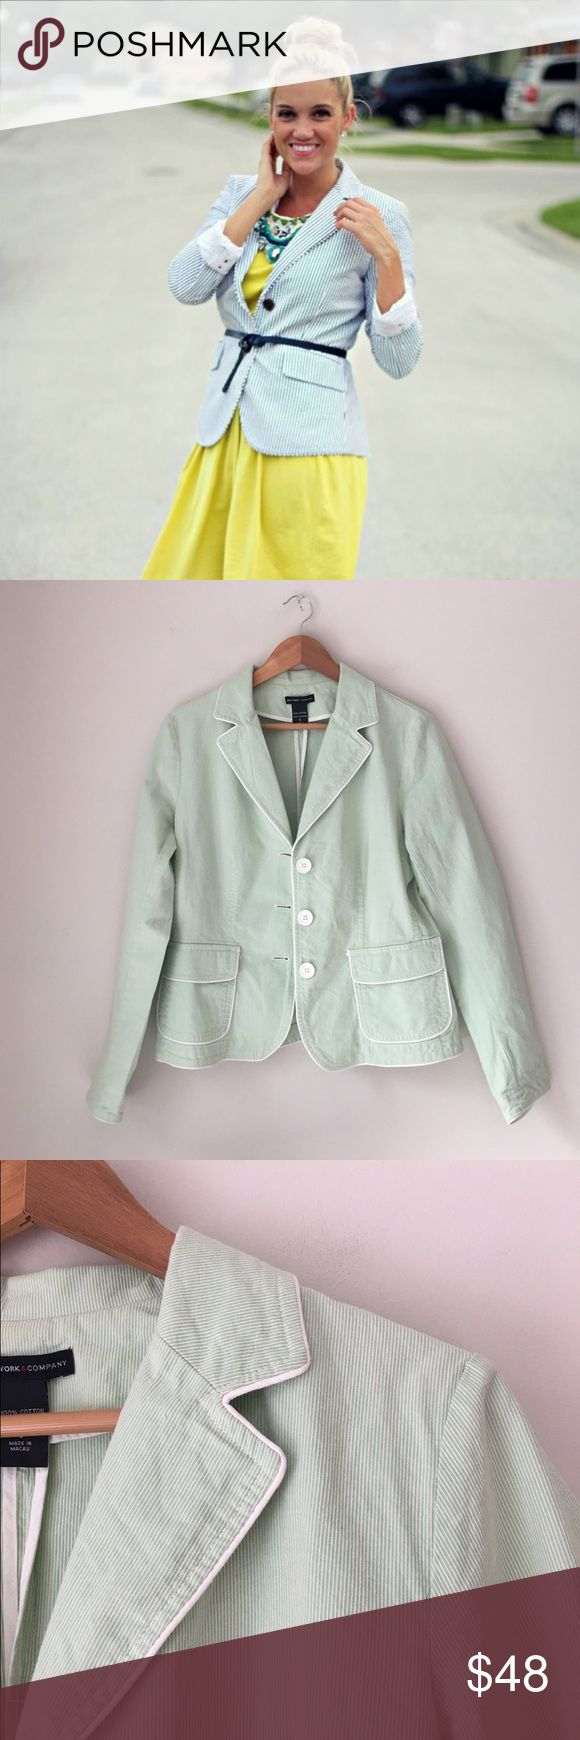 New York & Company Green Seersucker Blazer Beautiful green Seersucker blazer in cotton by New York & Company. Size 8. EUC. New York & Company Jackets & Coats Blazers